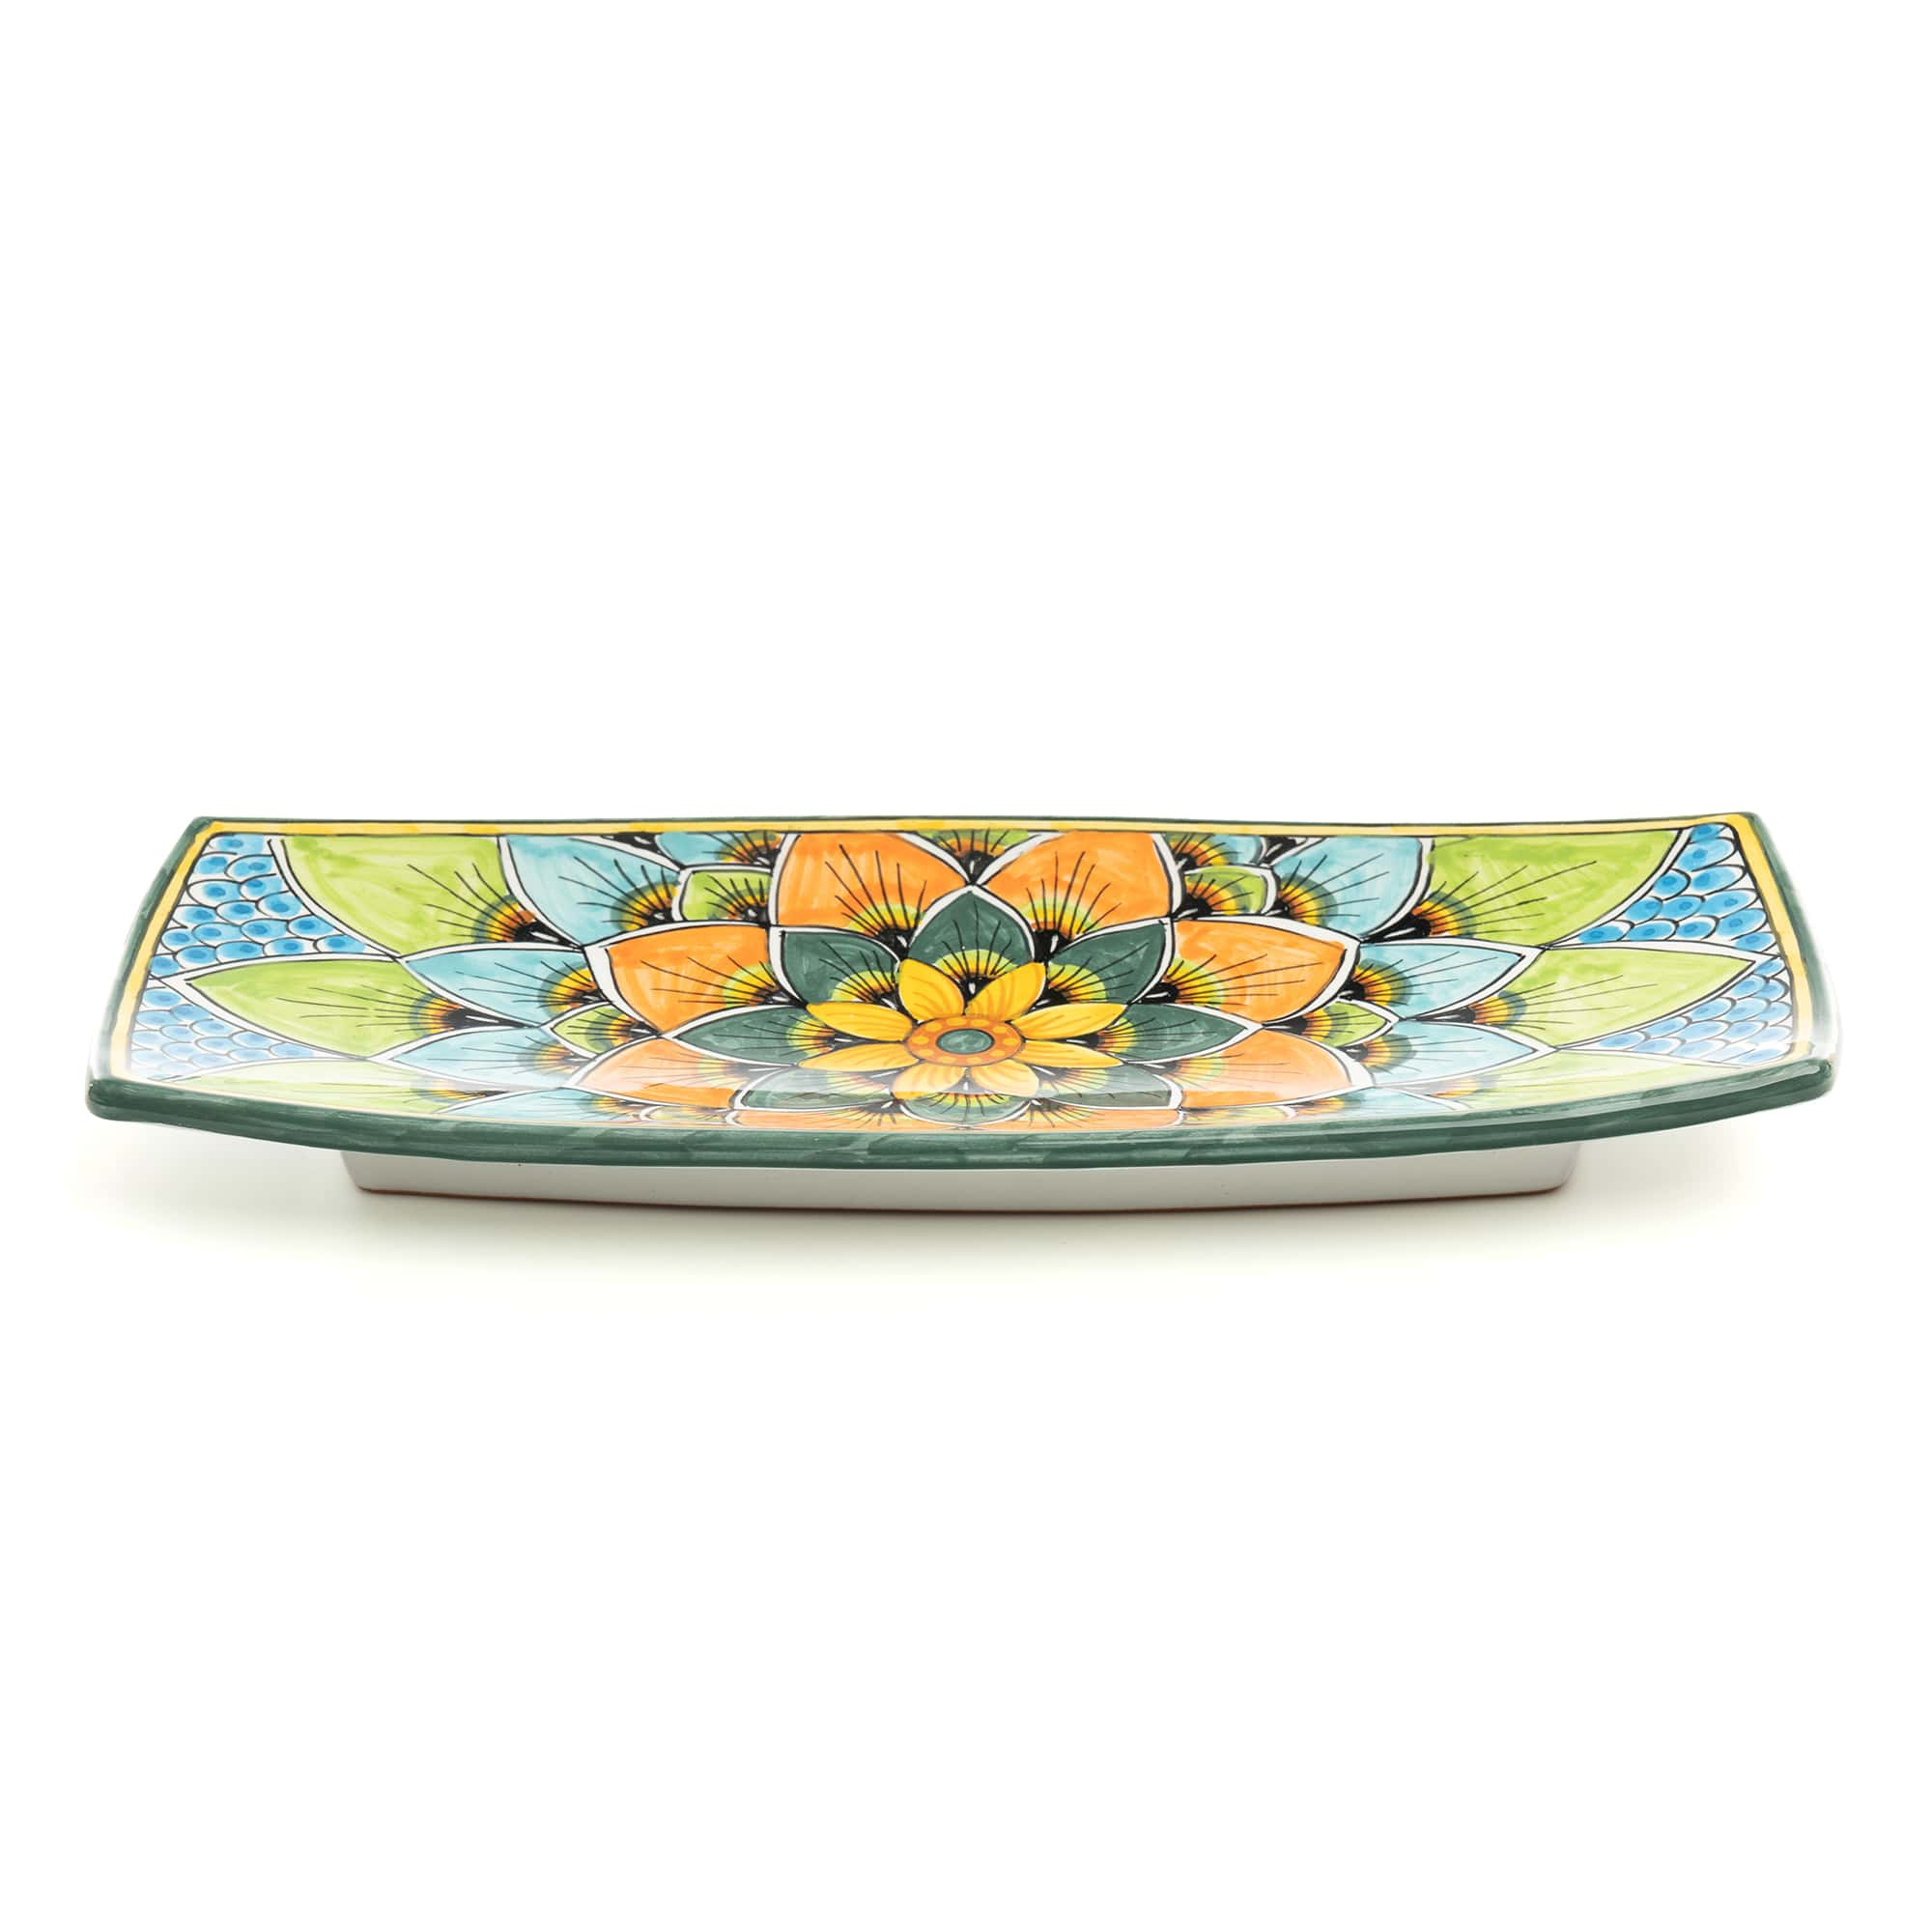 Rectangular Rounded Tray (PG07) in Blue,Orange and Green Peakcock Design